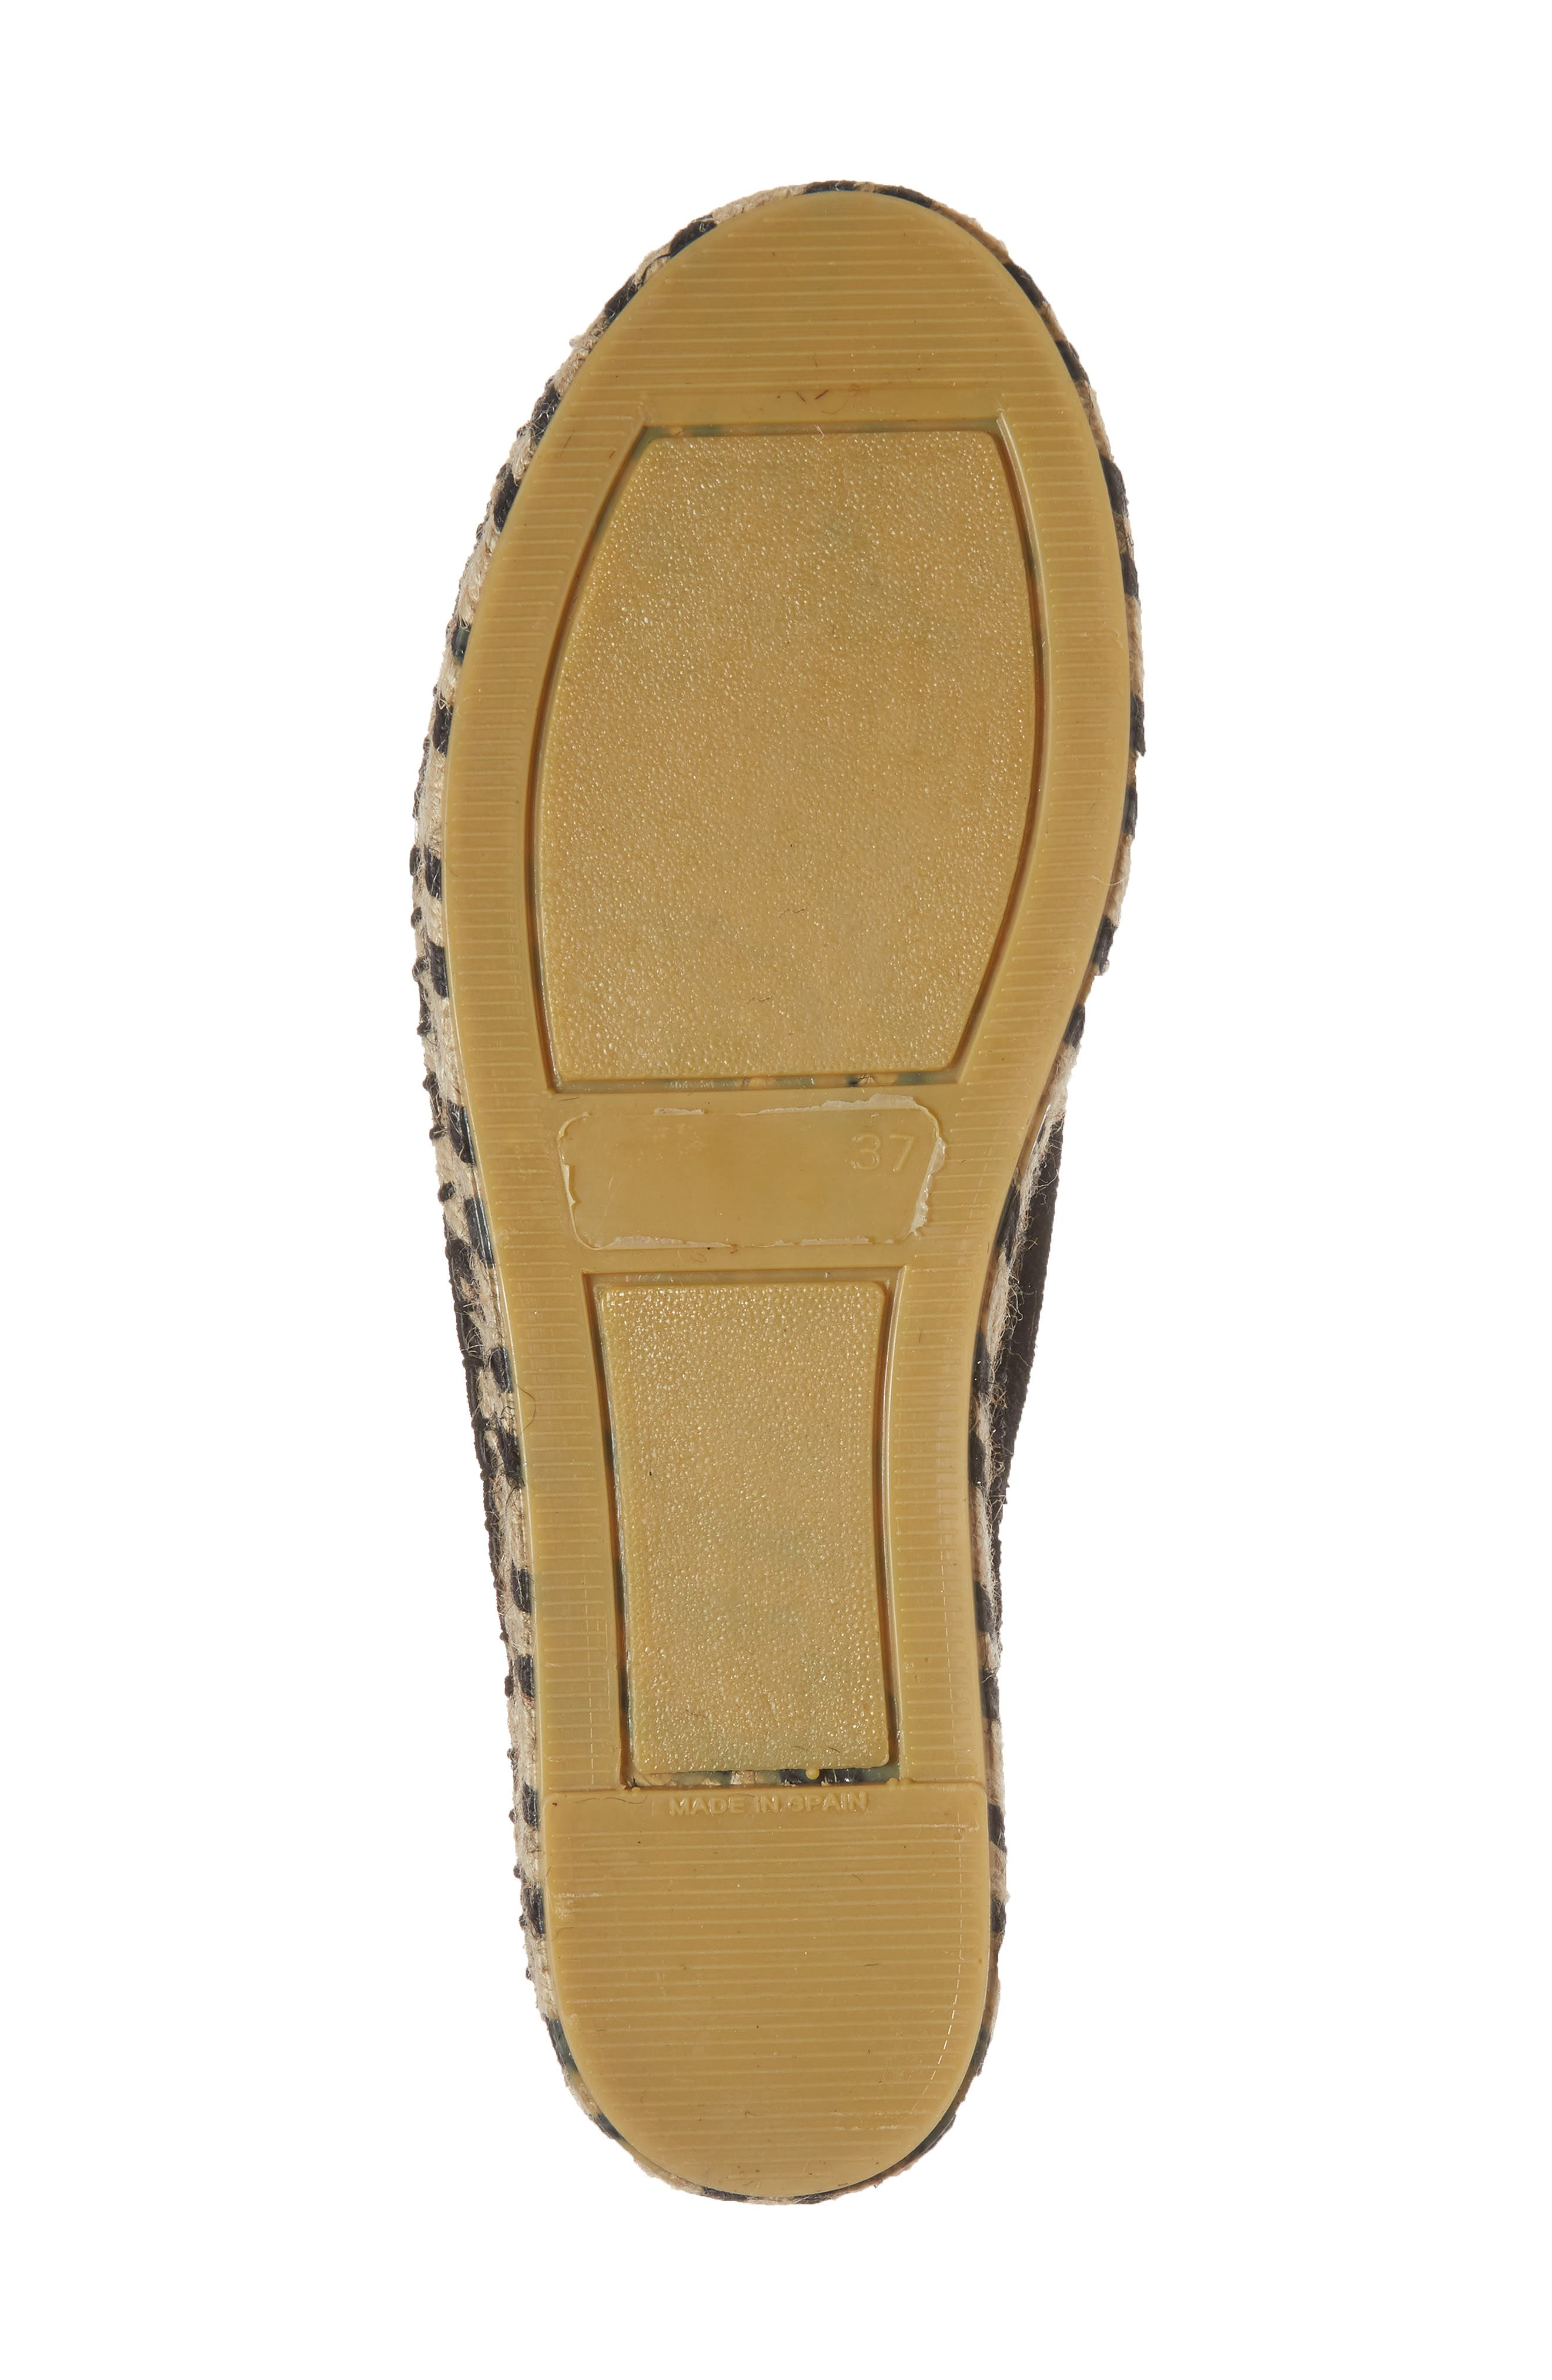 Tuscan Slip-On Espadrille Sandal,                             Alternate thumbnail 6, color,                             001